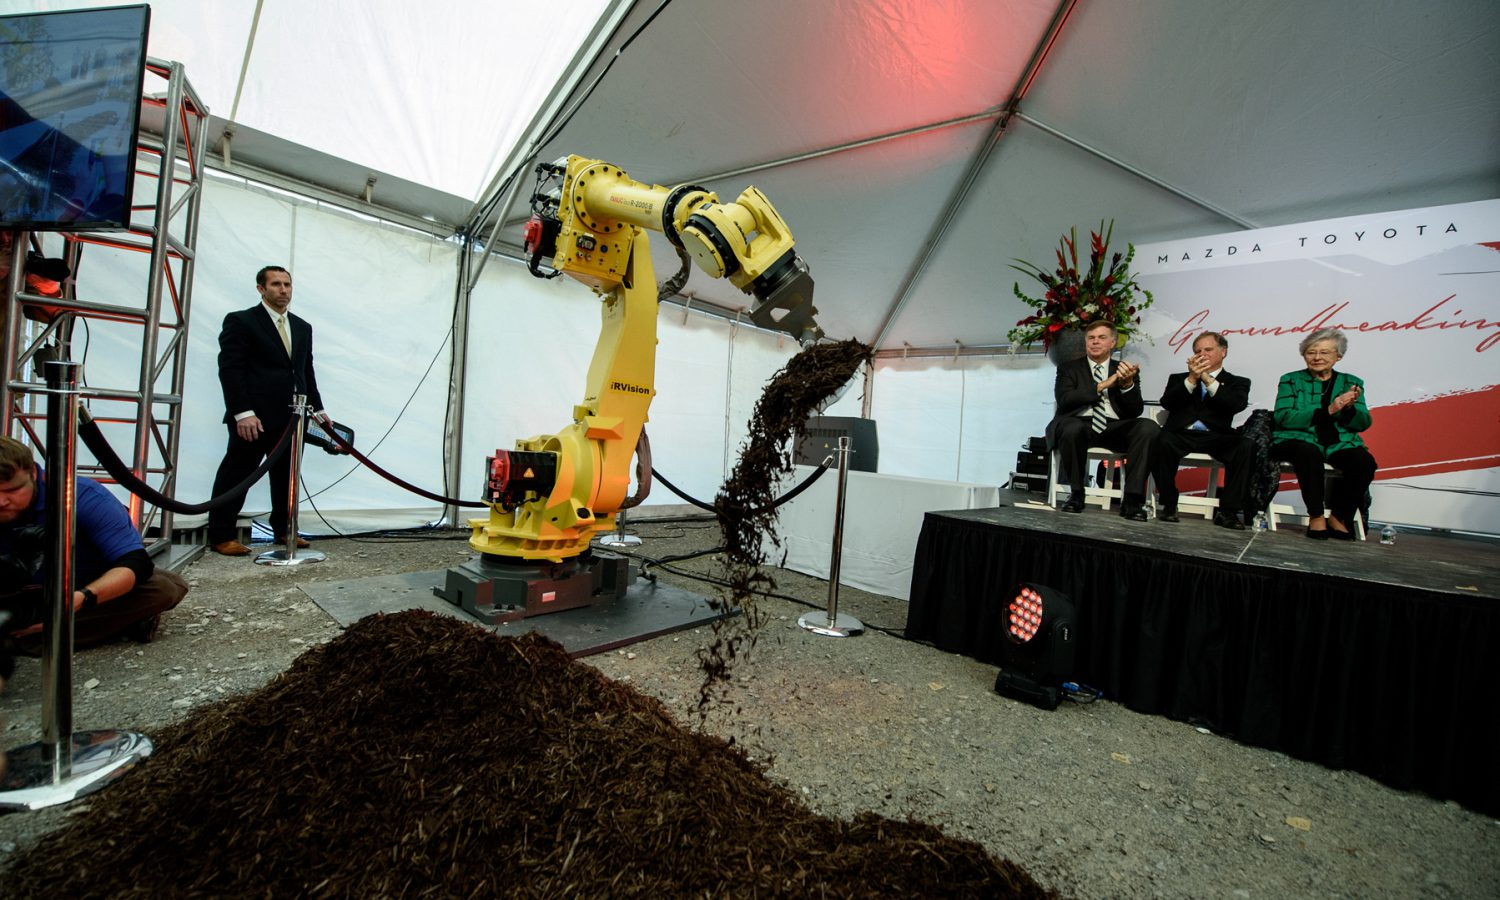 Mazda Toyota Plant Paving the Way for Groundbreaking Future